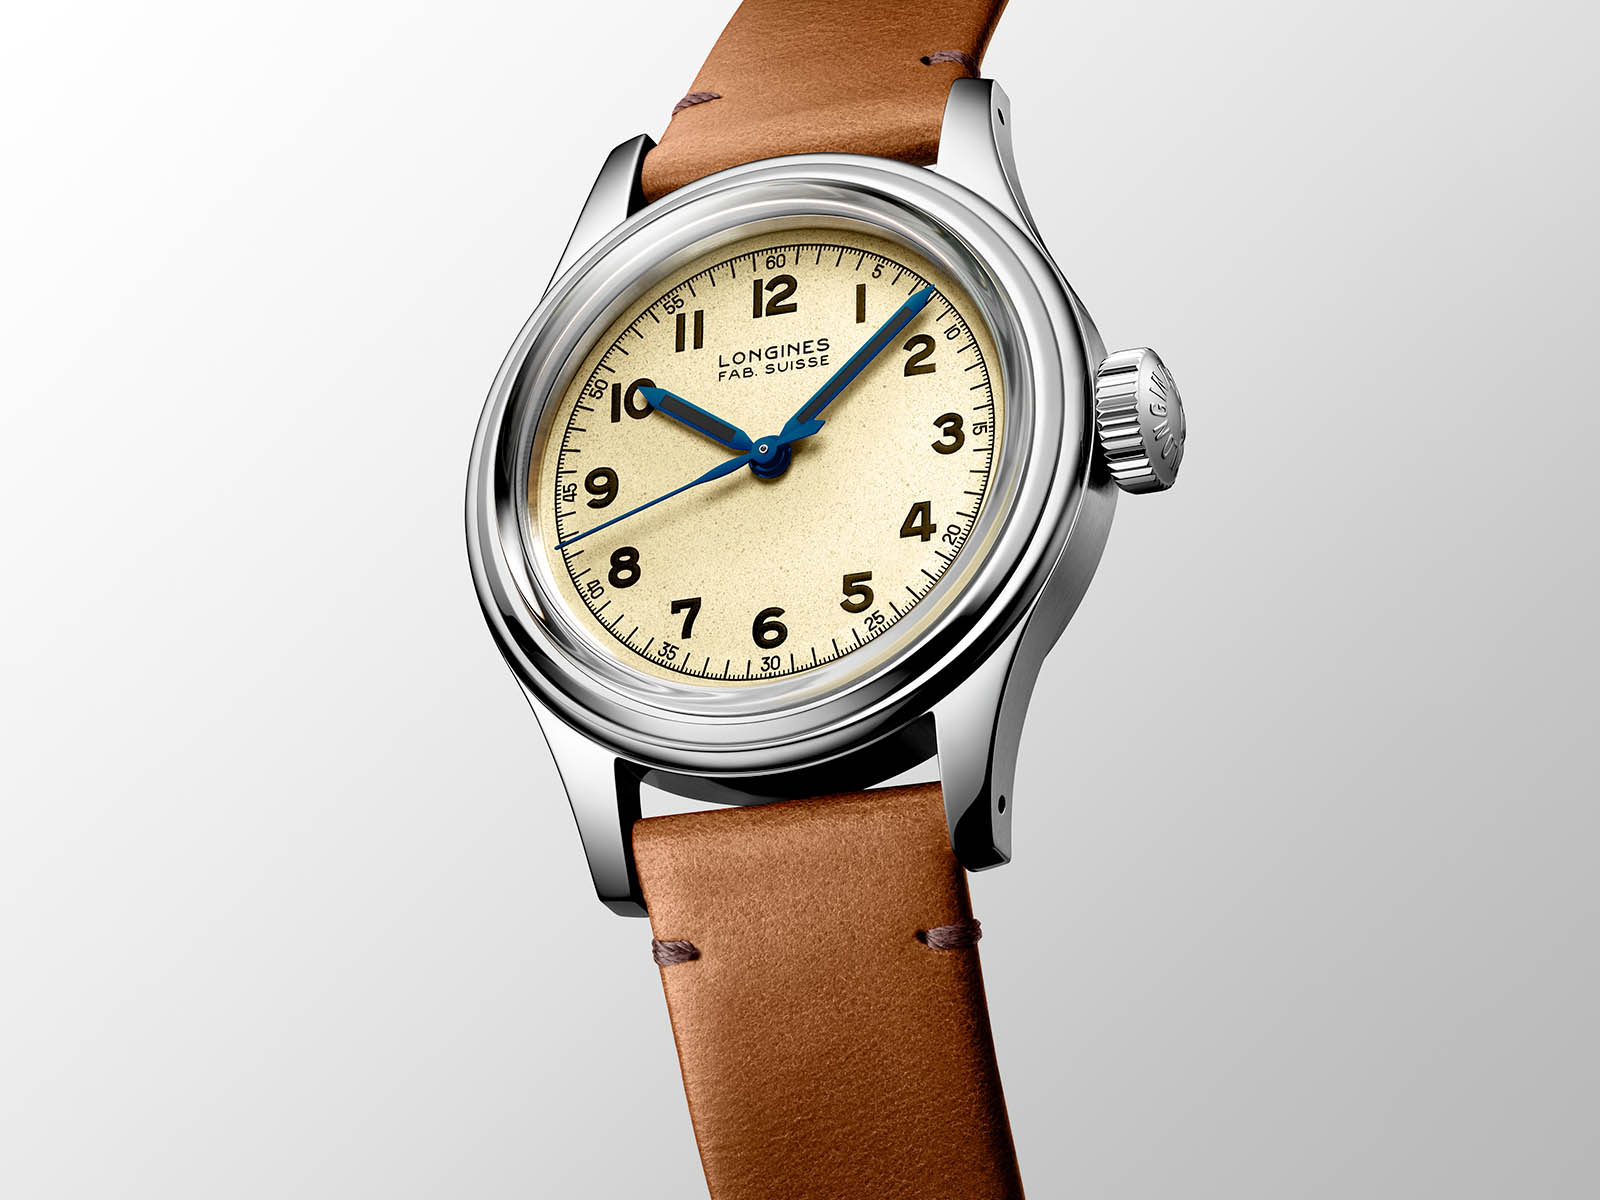 l2-833-4-93-2-longines-heritage-military-marine-nationale-3.jpg